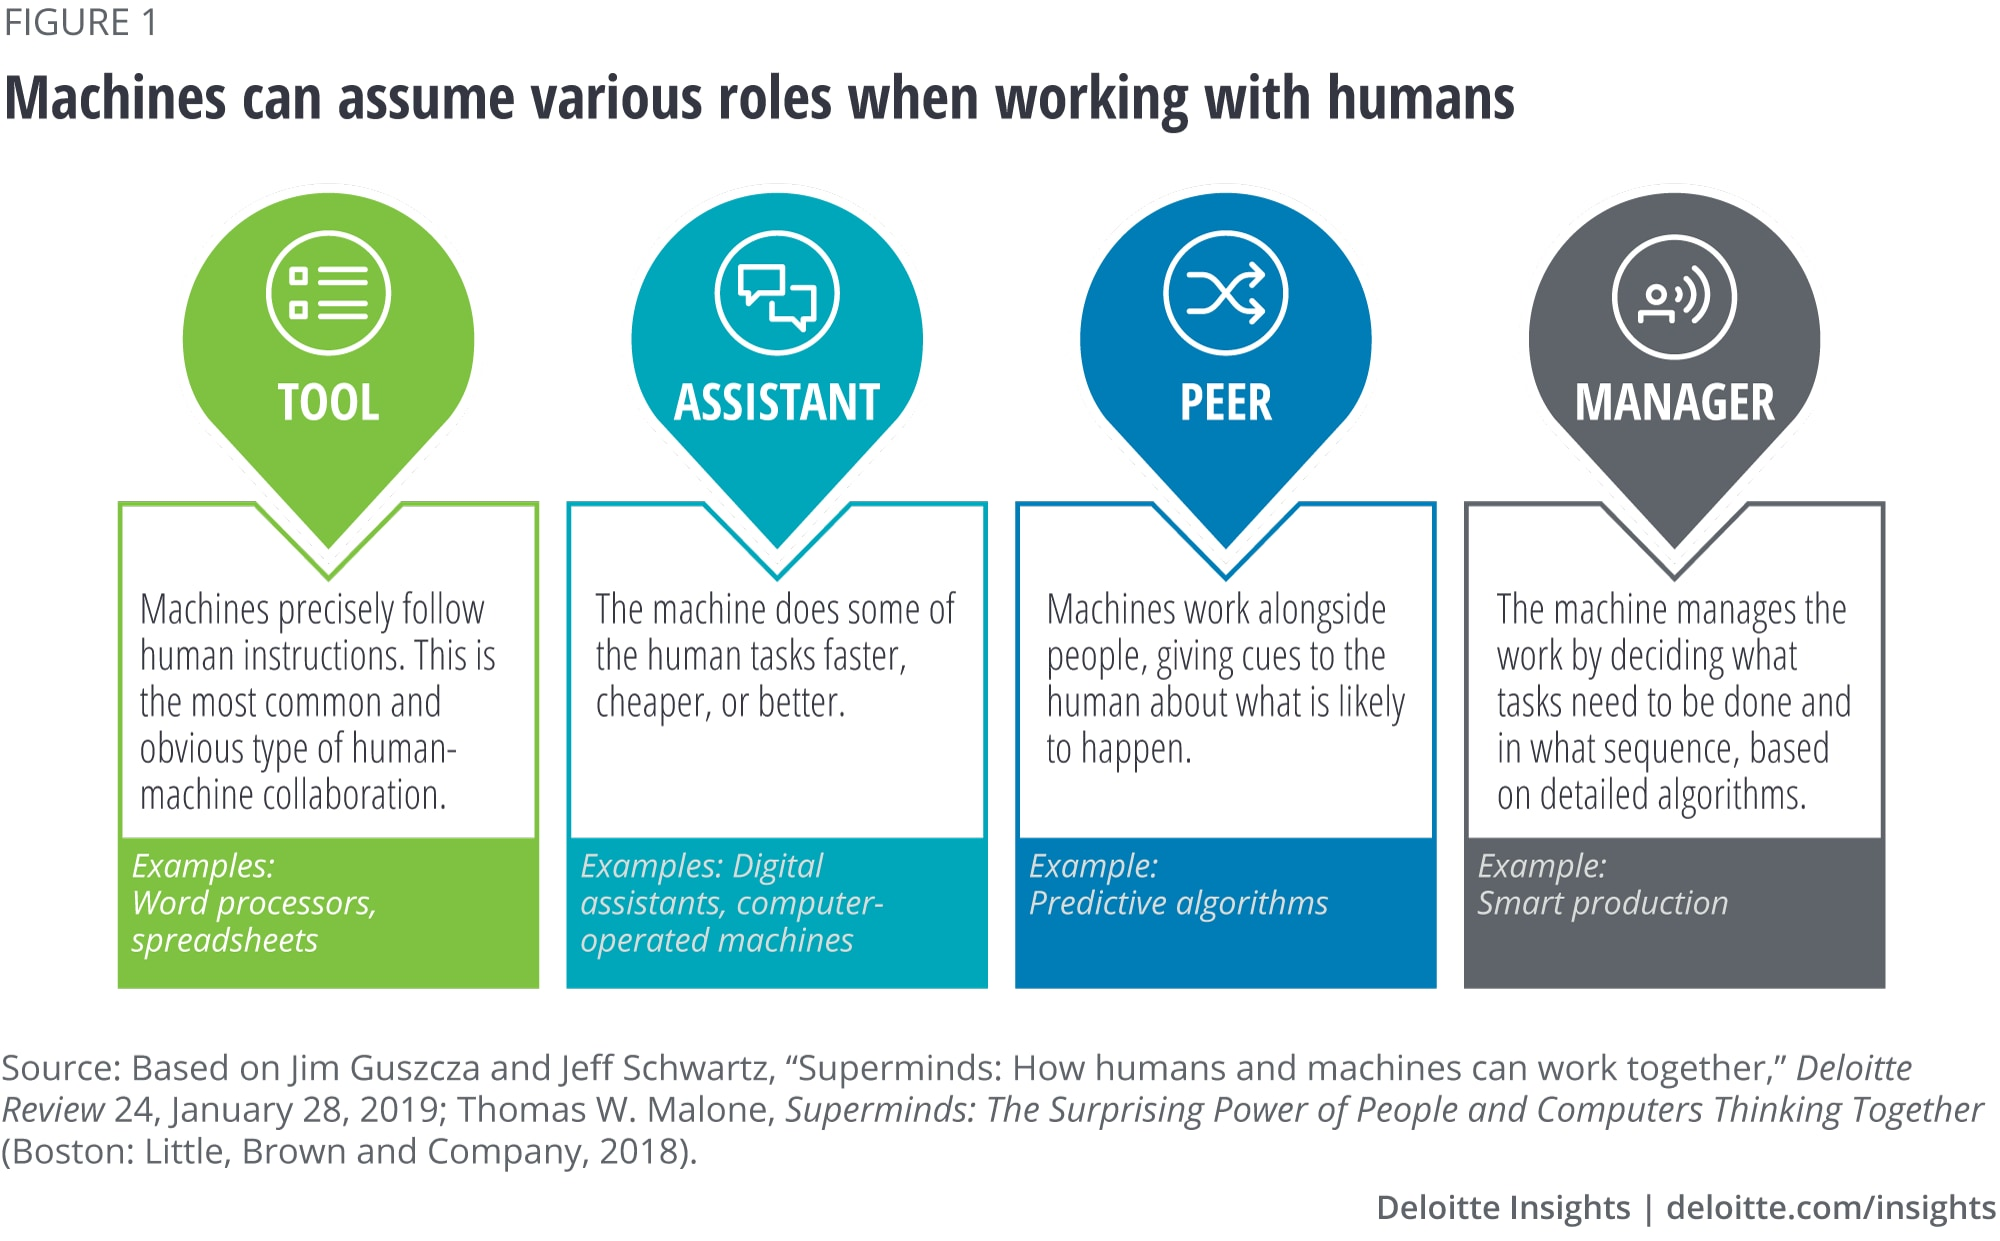 Machines can assume various roles when working with humans